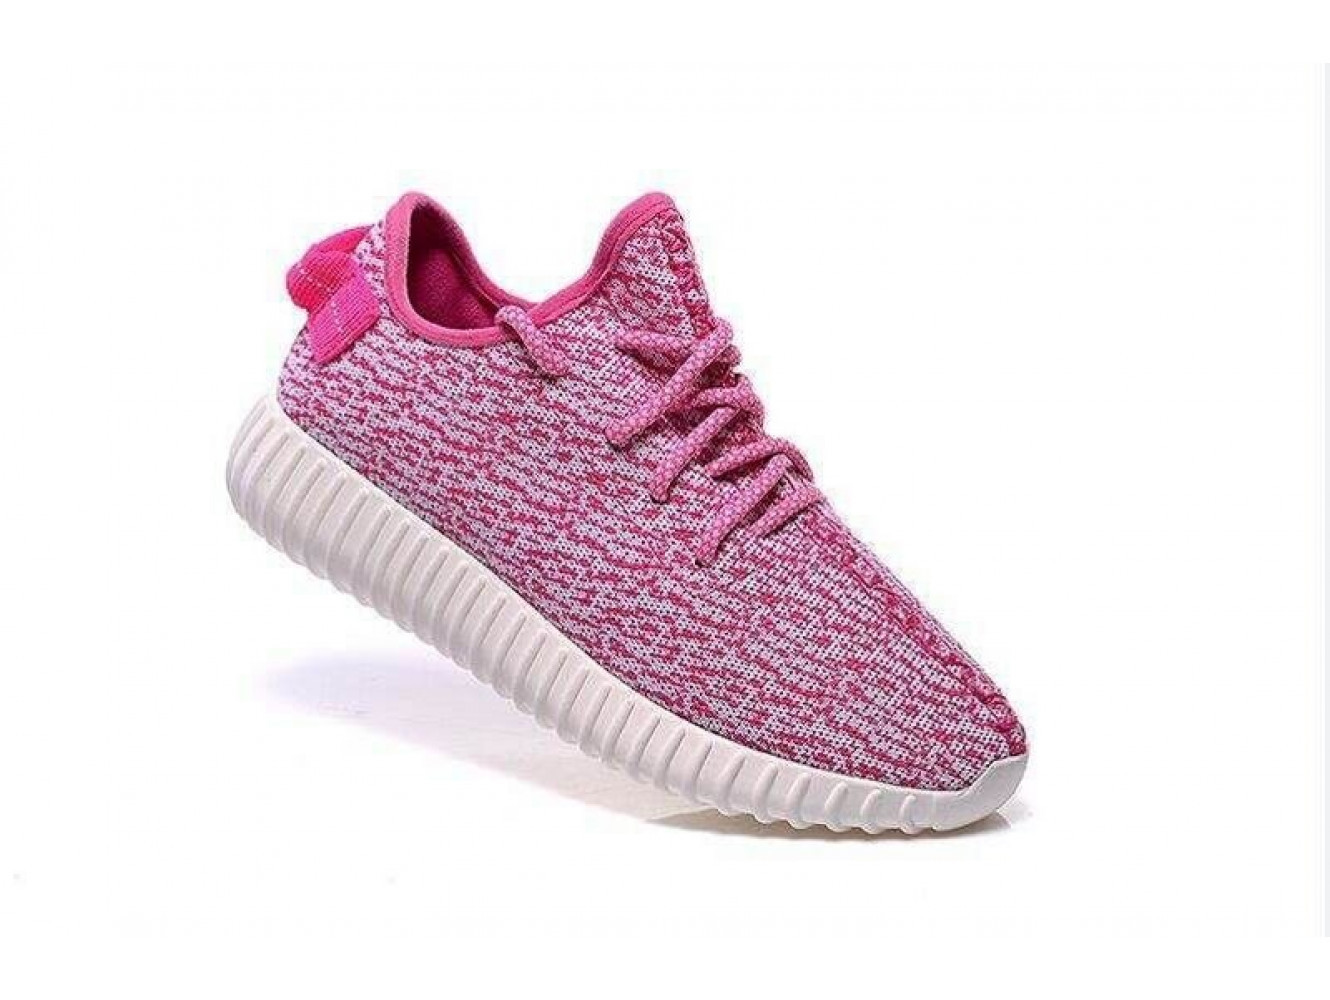 Adidas Yeezy 350 Boost By Kanye West Жен (Pink) (004)